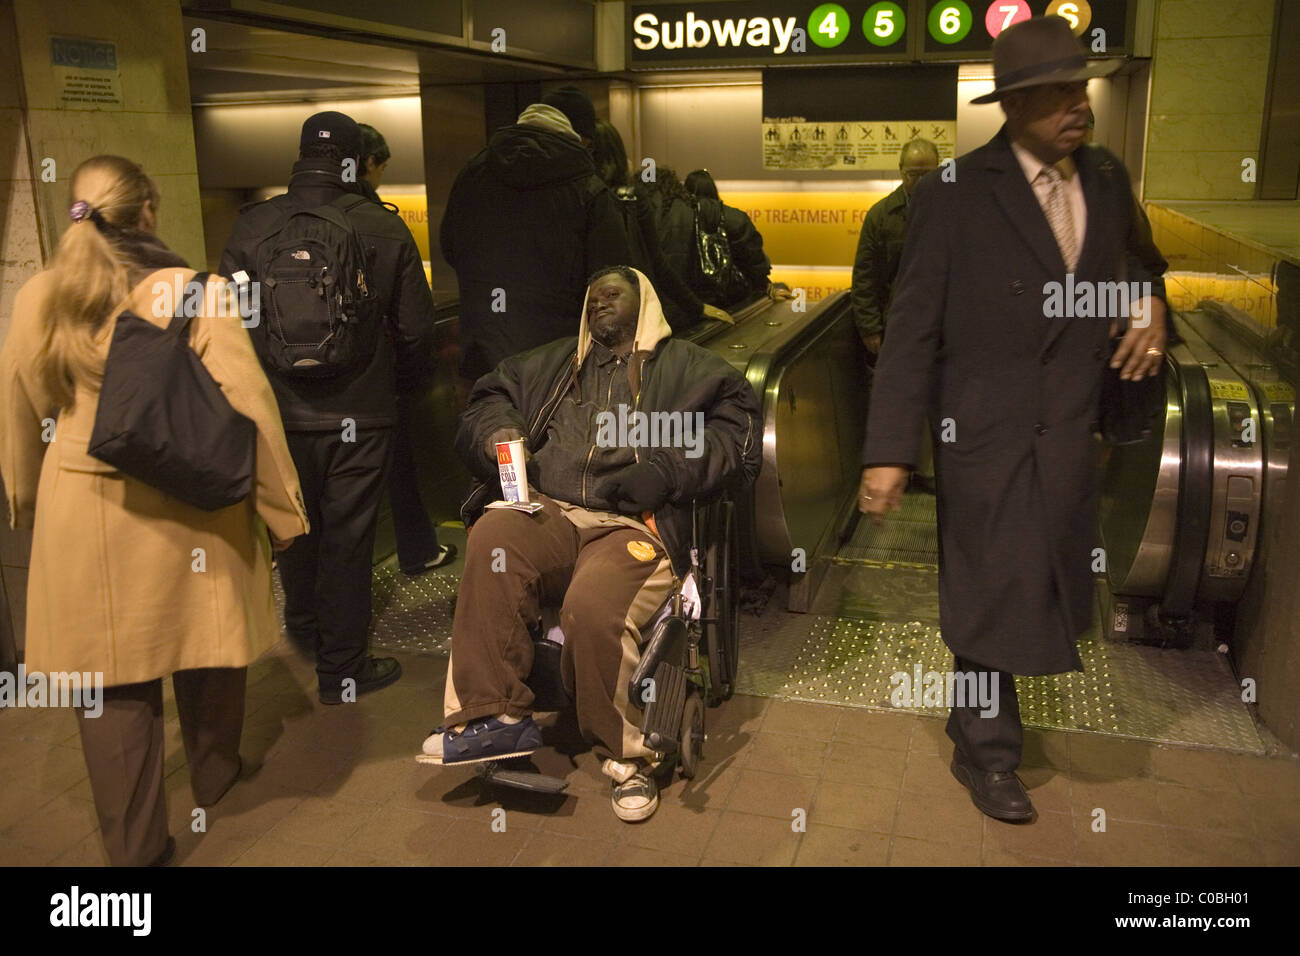 Severely disabled man in wheel chair begs for money at Grand Central Station, New York City. - Stock Image